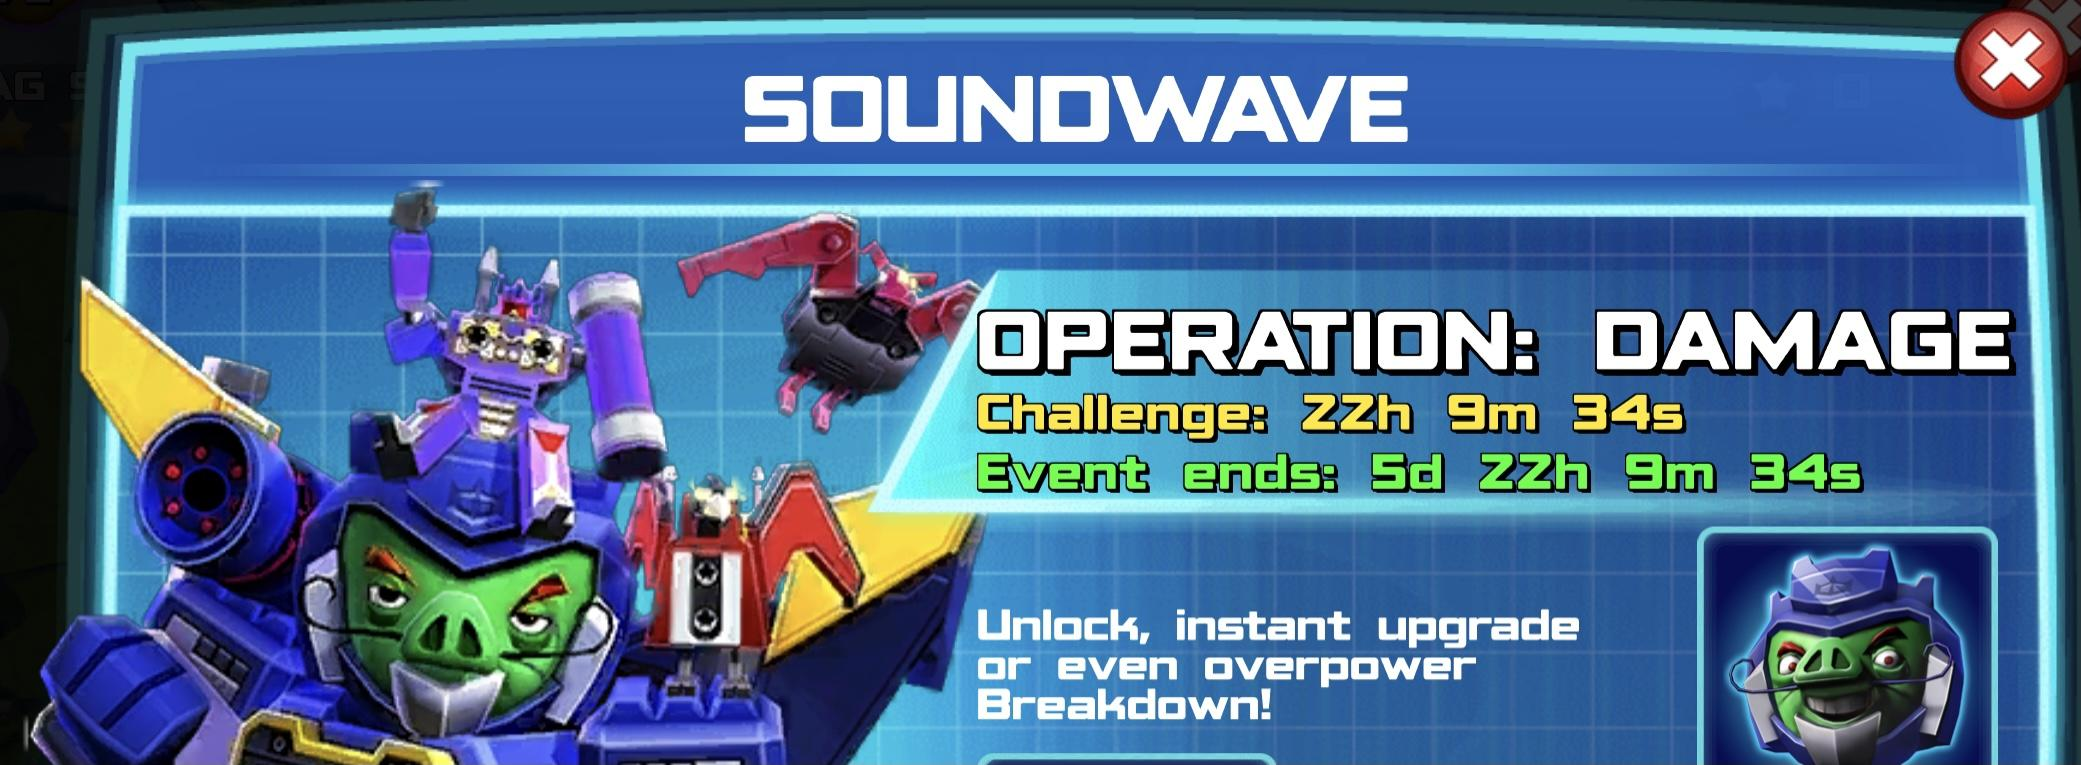 The event banner for Soundwave